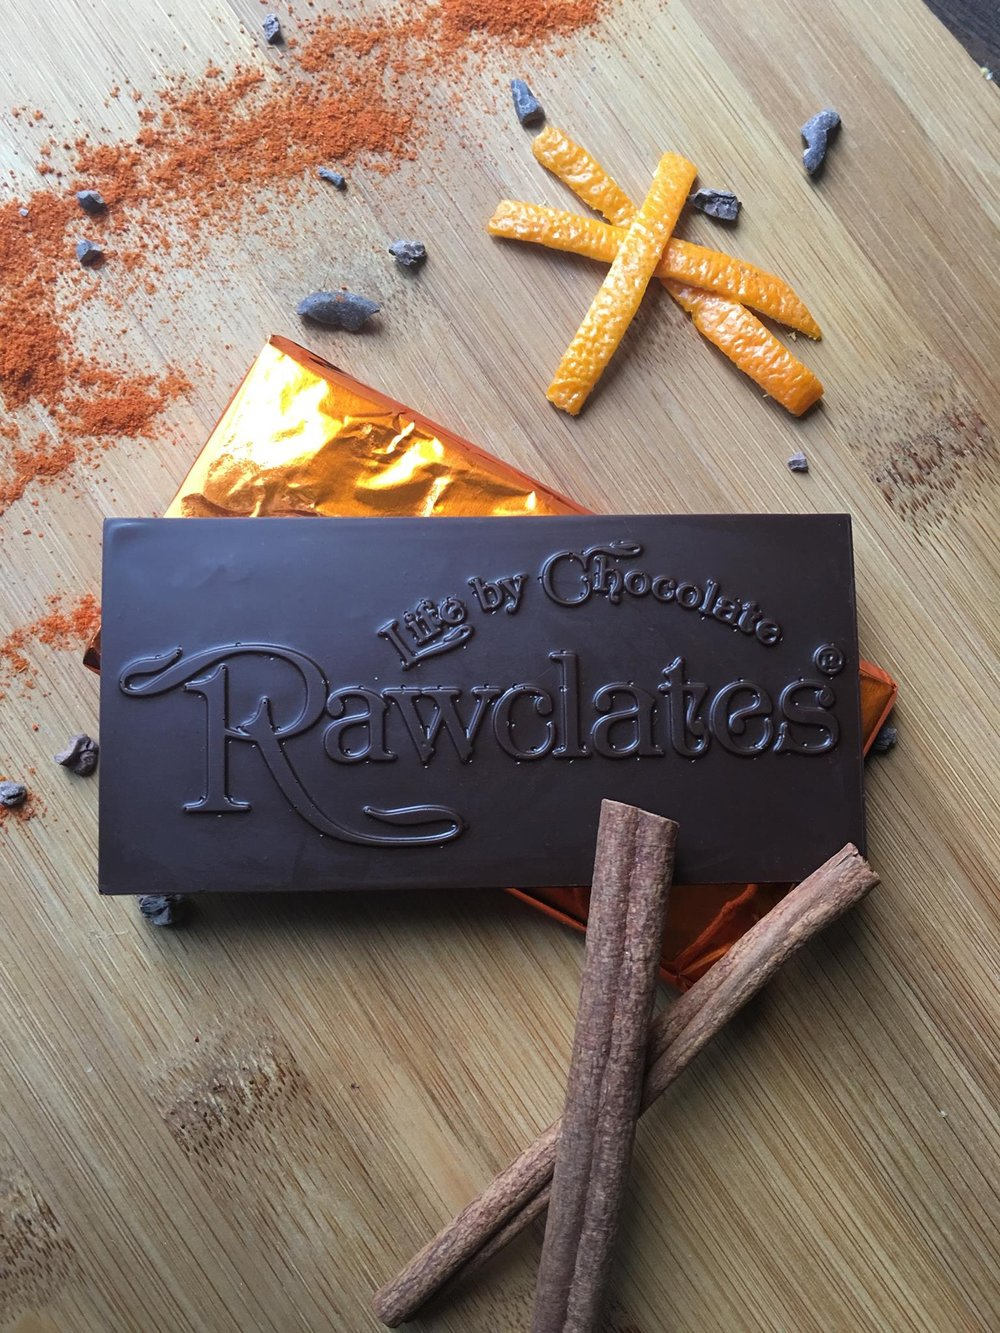 Firecracker Chocolate Bar by Rawclates